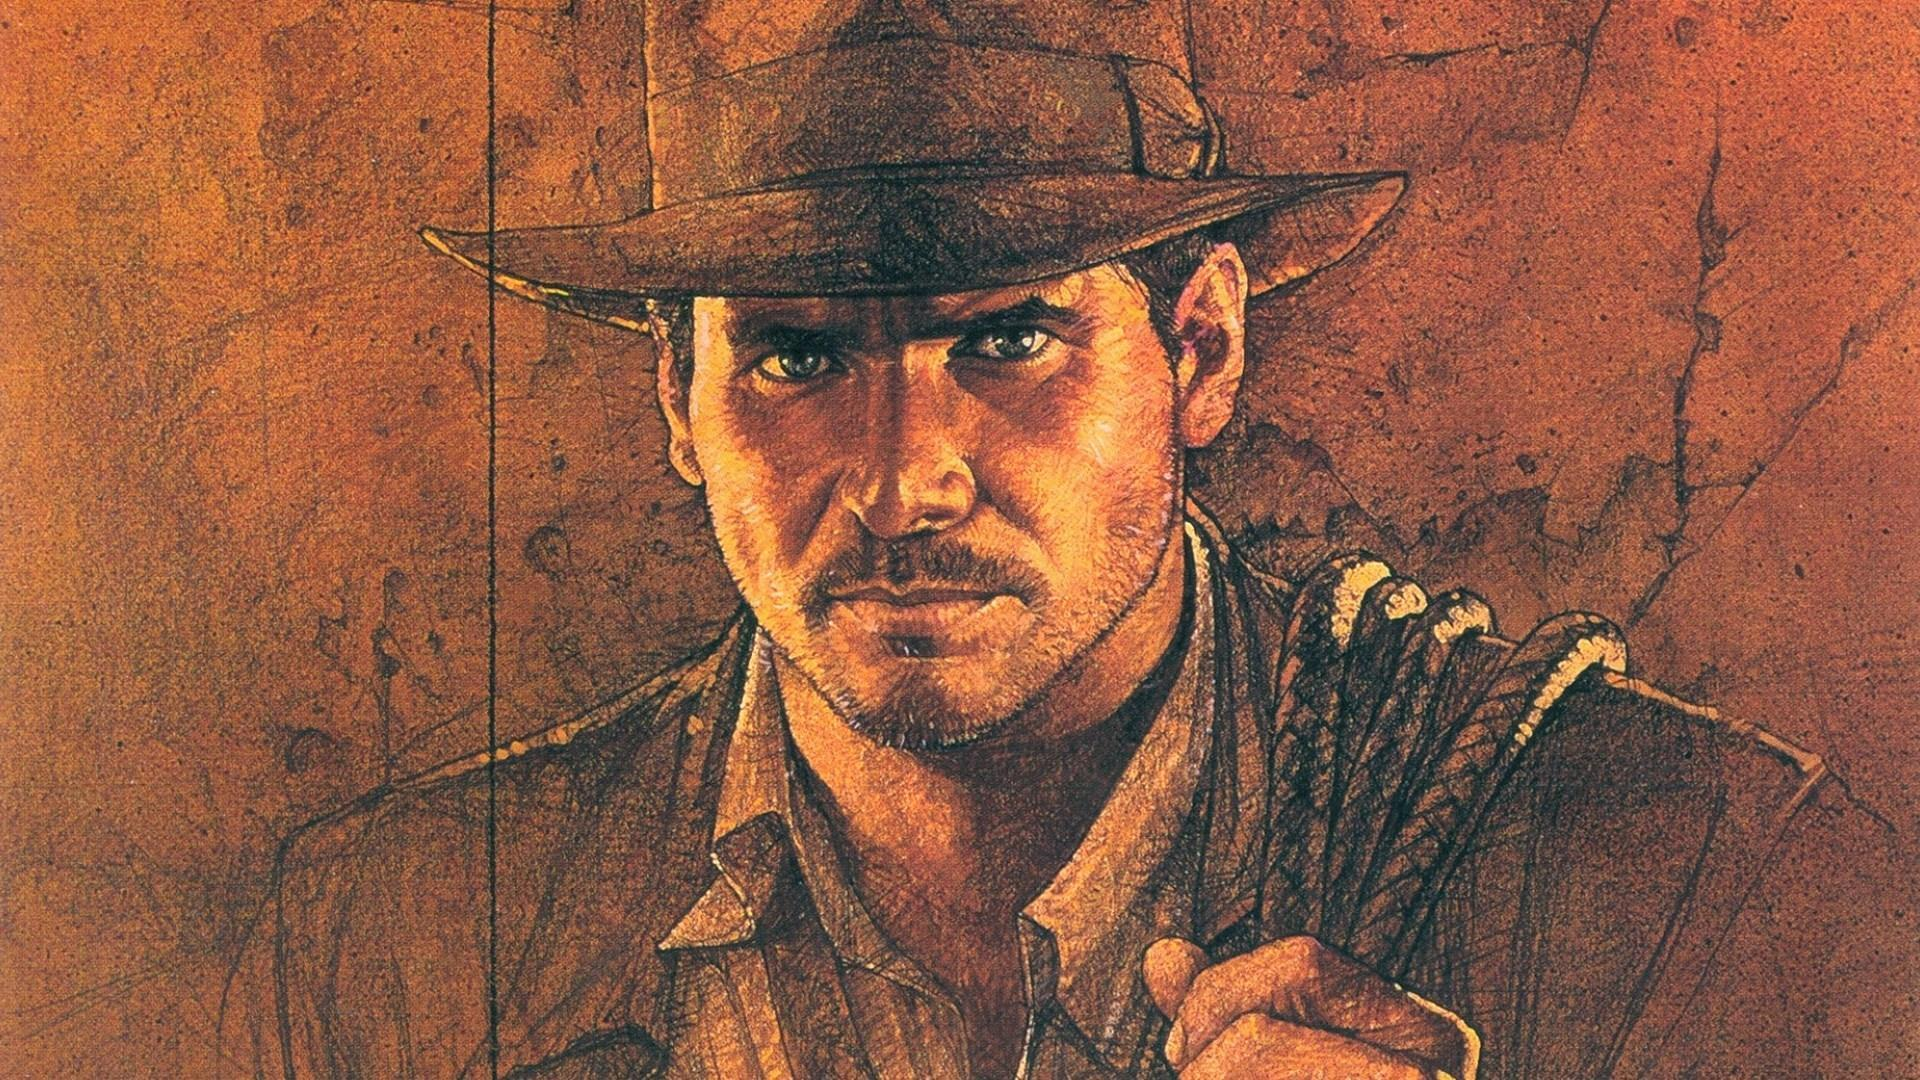 POLL: Indiana Jones-films